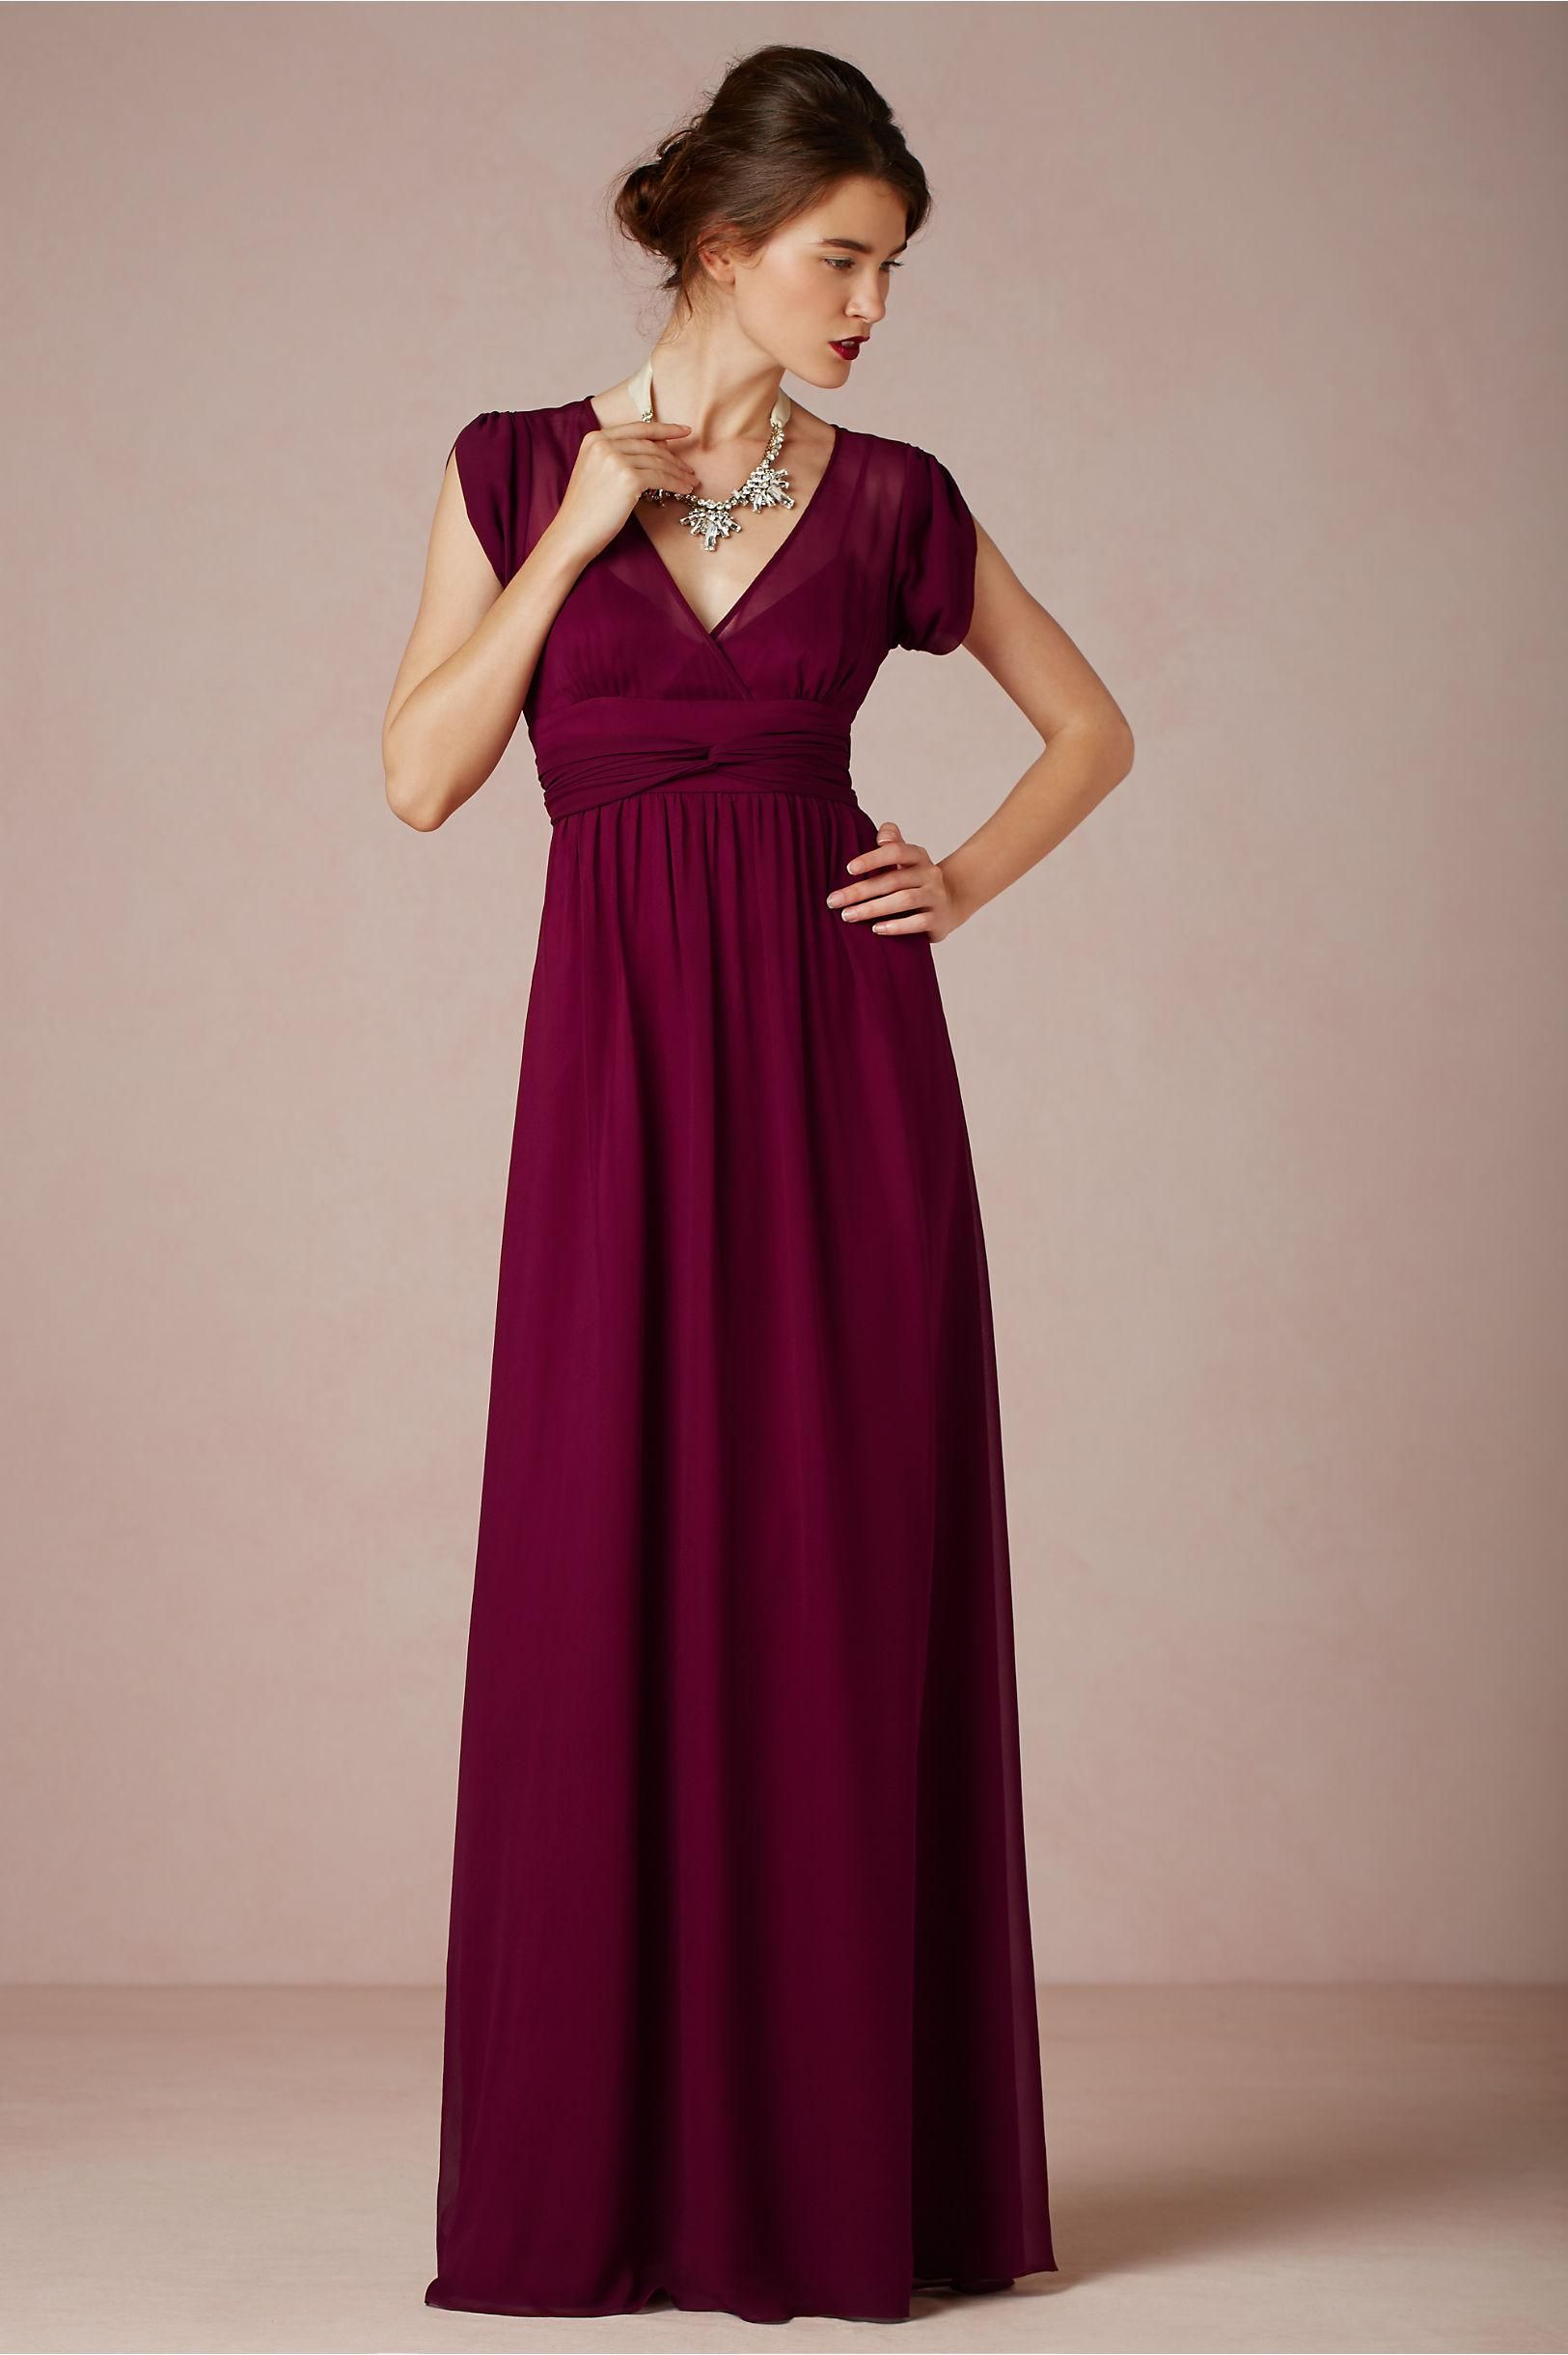 6a7095916b0 Ava Maxi Dress in Merlot from BHLDN